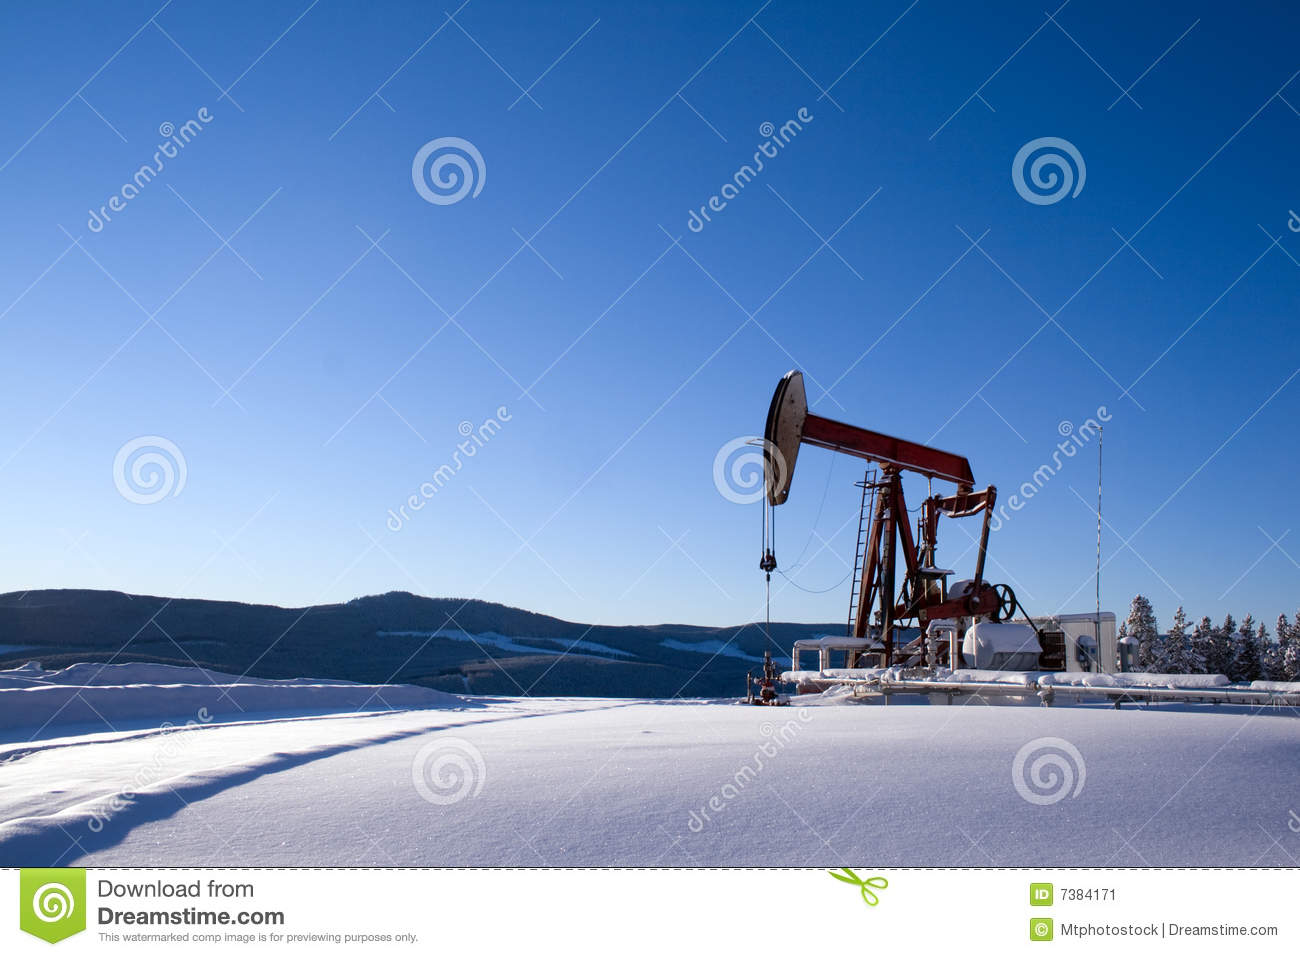 Oil well pumpjack mountain snow